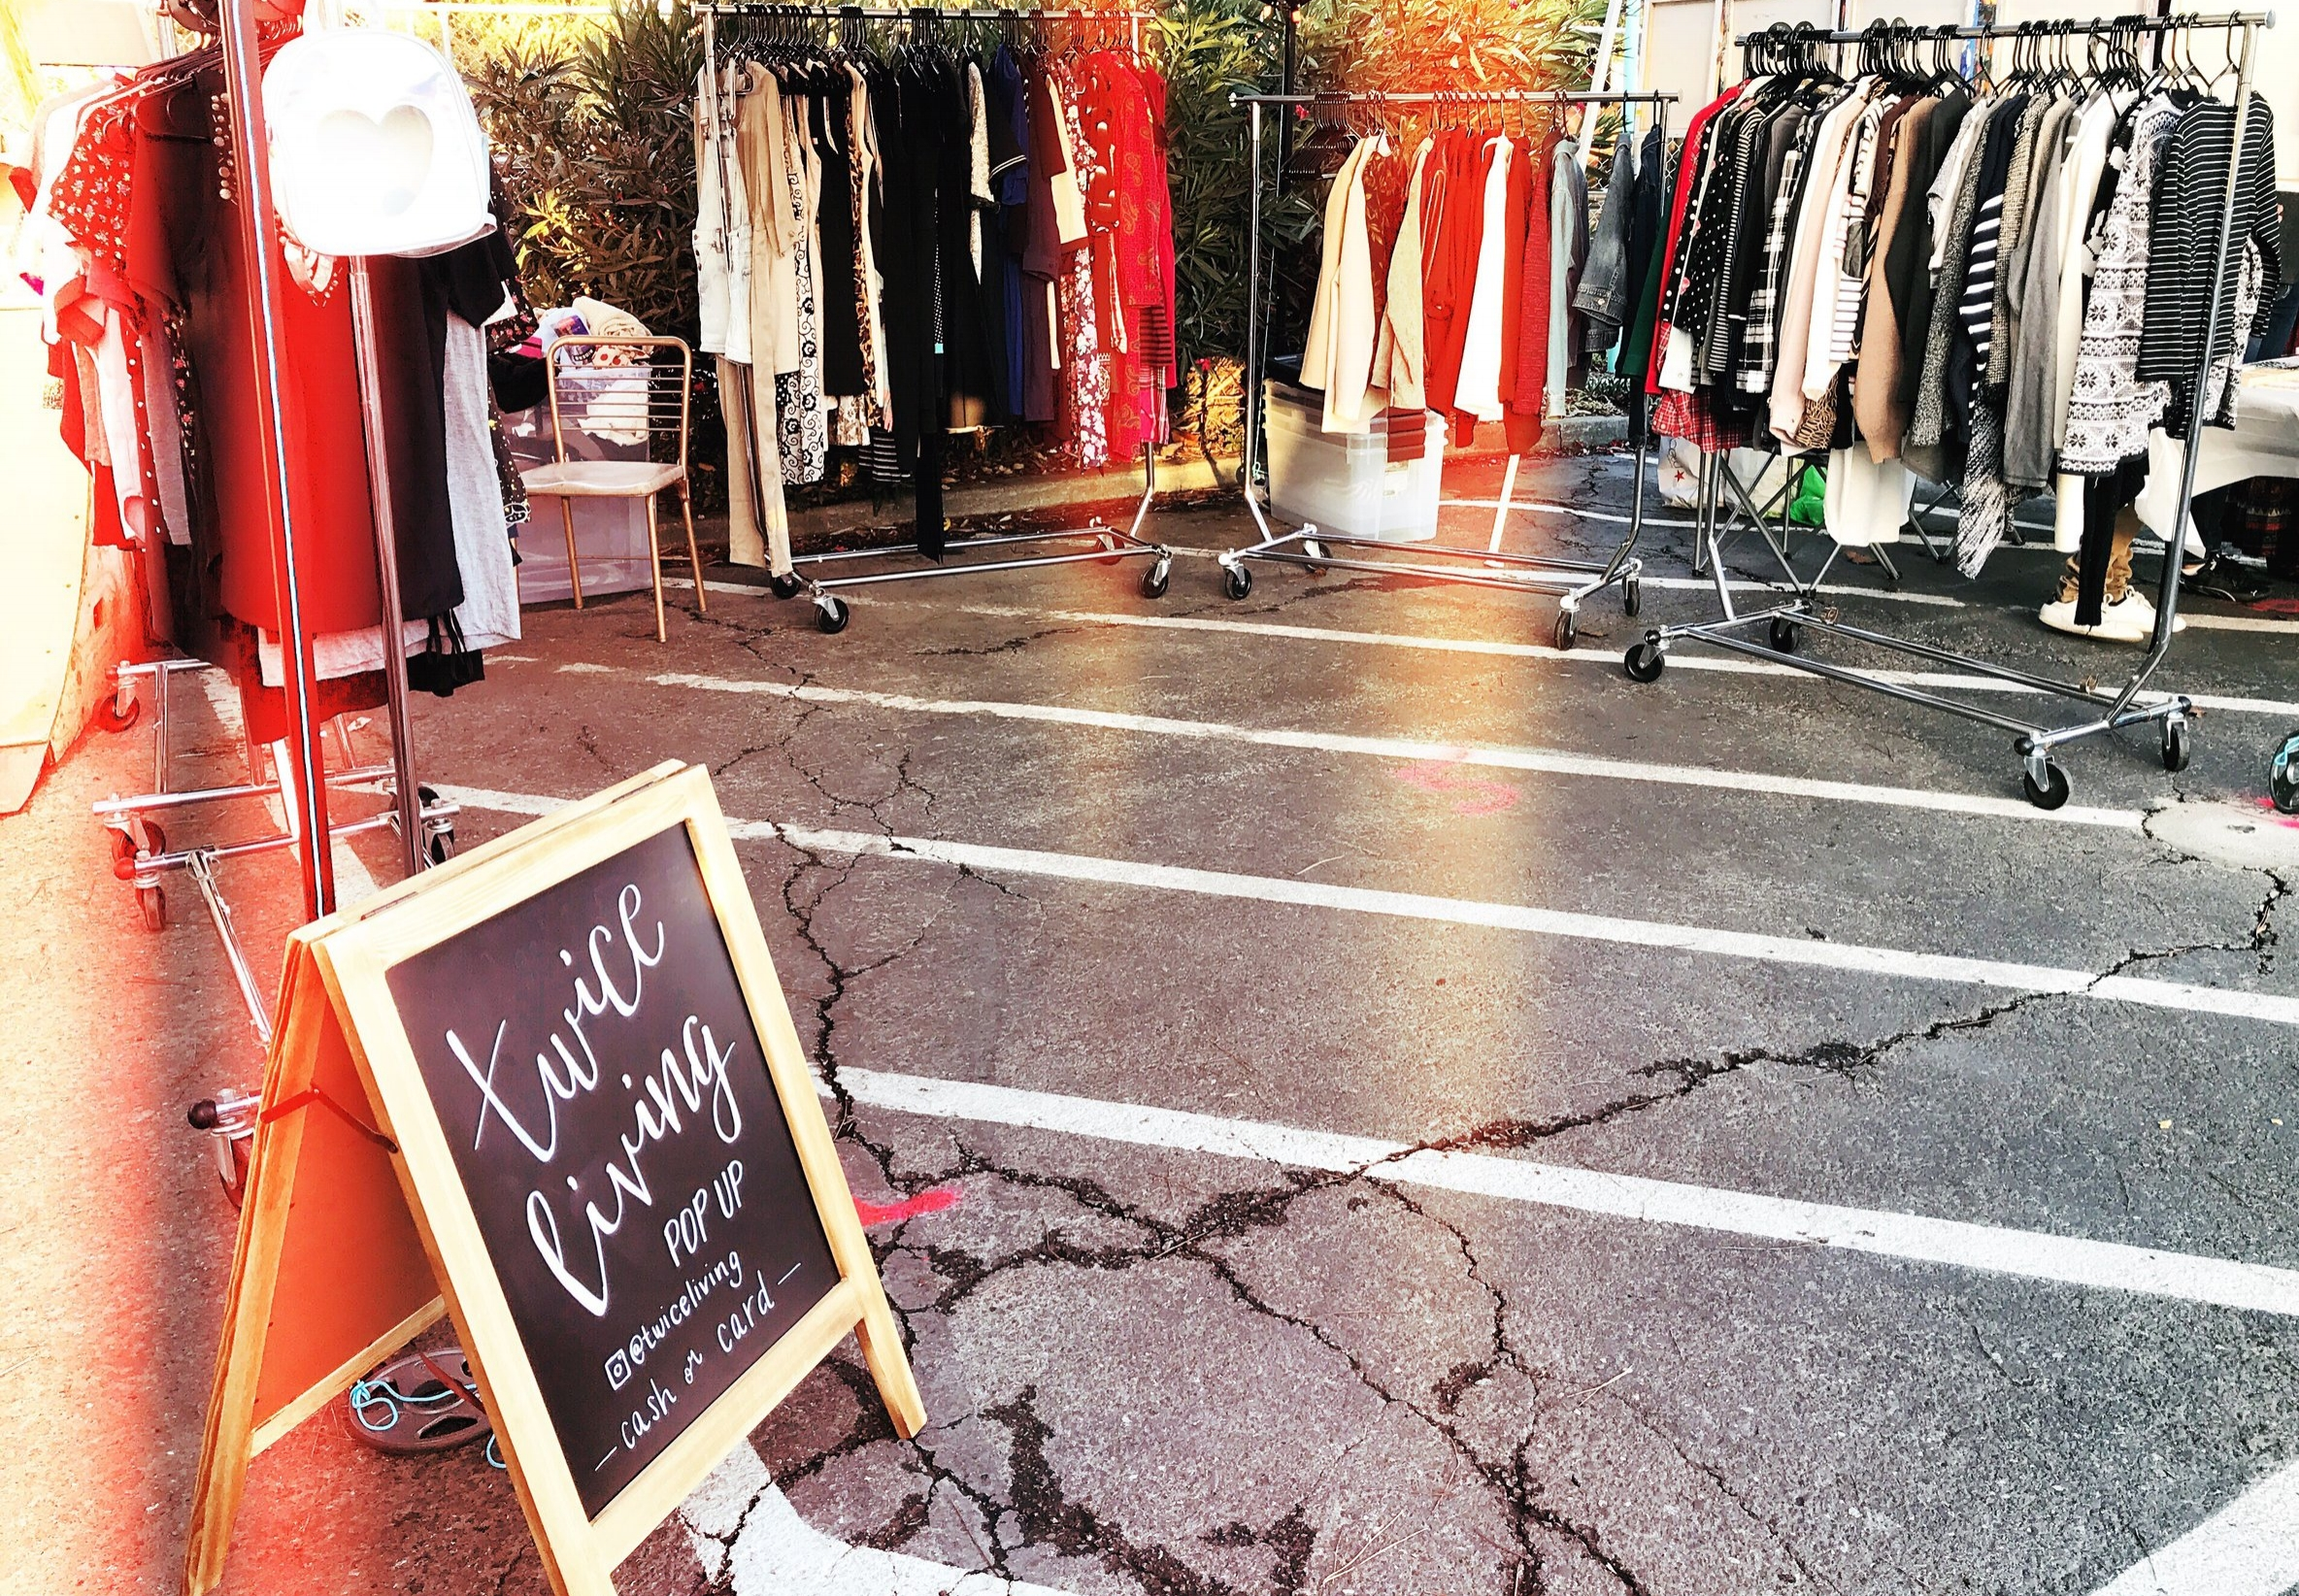 townfair plaza //small business sat - downtown fremont